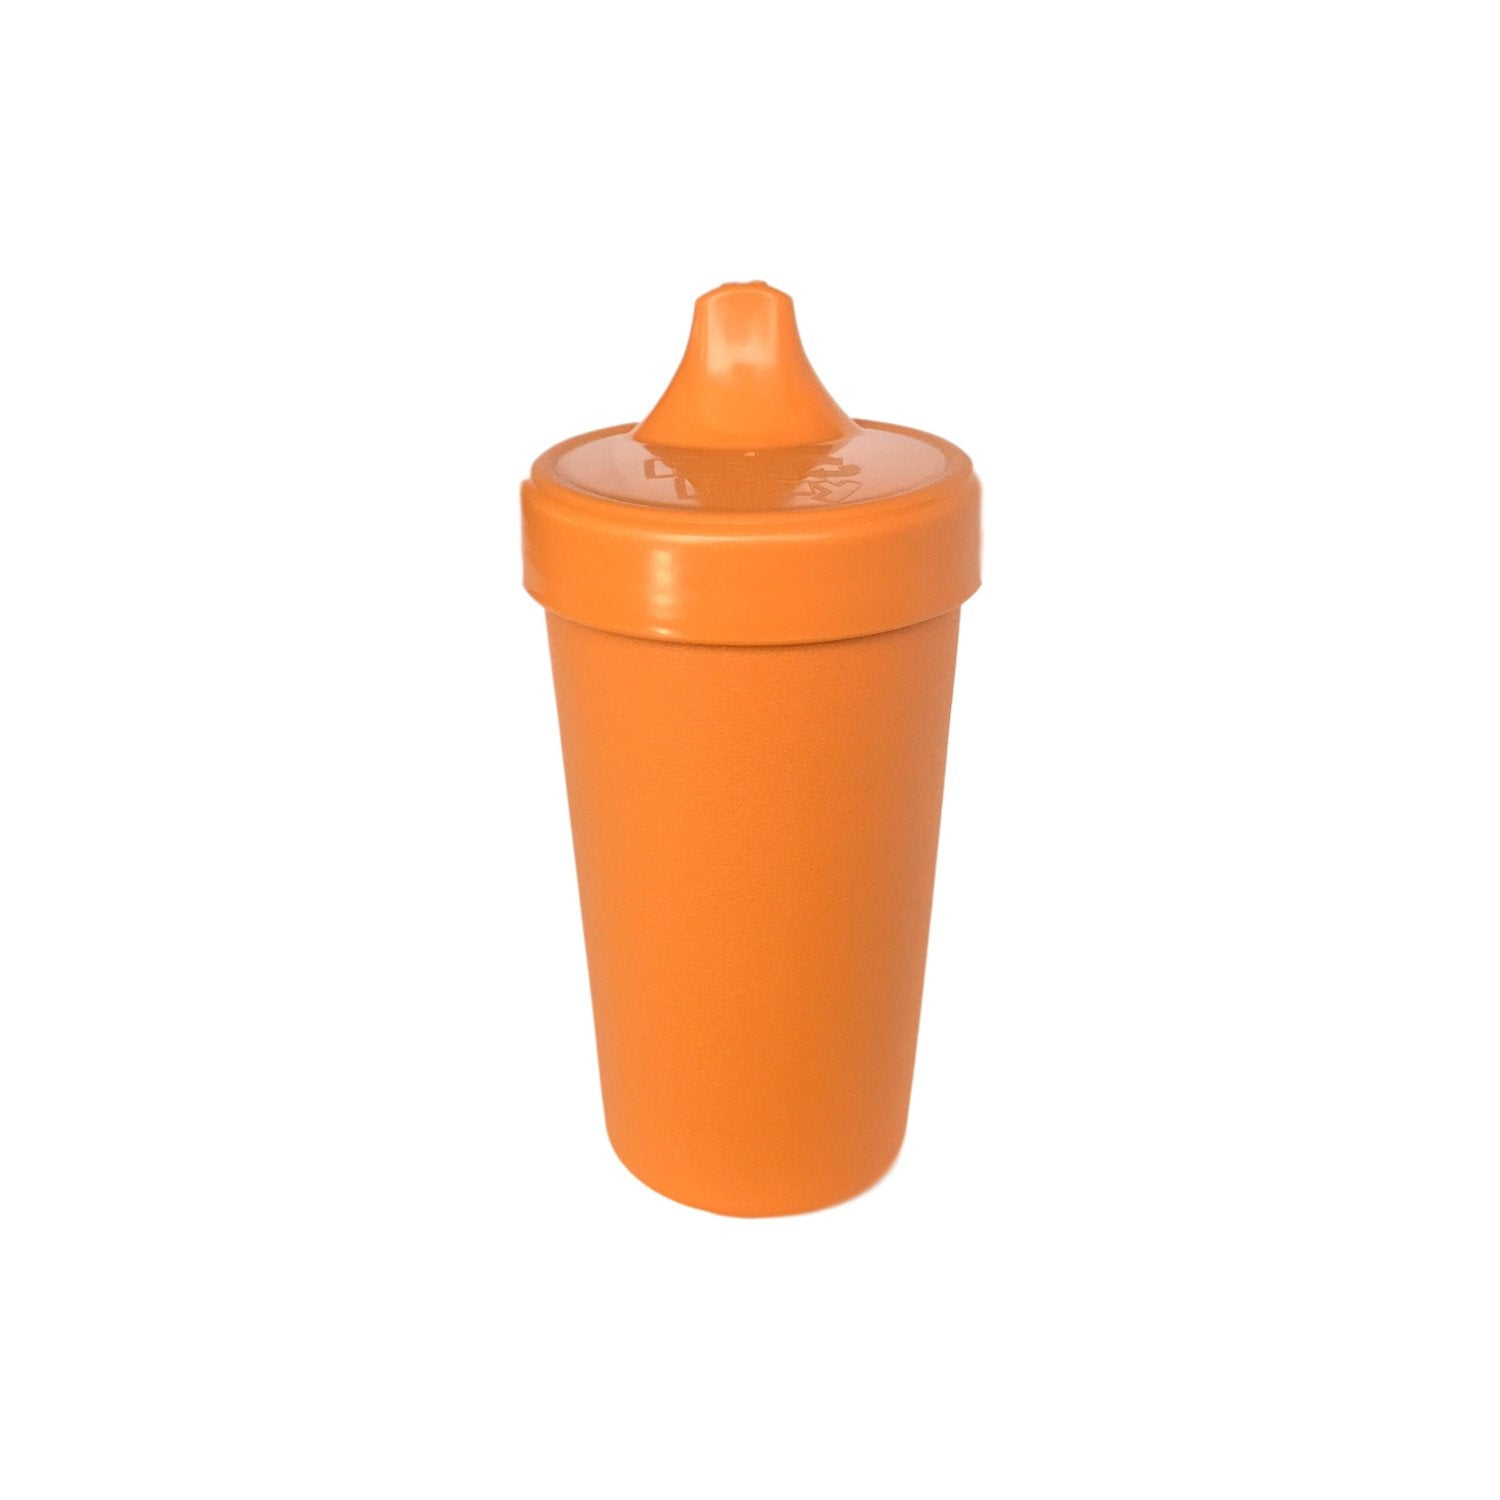 Replay Sippy Cup Replay Sippy Cups Orange at Little Earth Nest Eco Shop